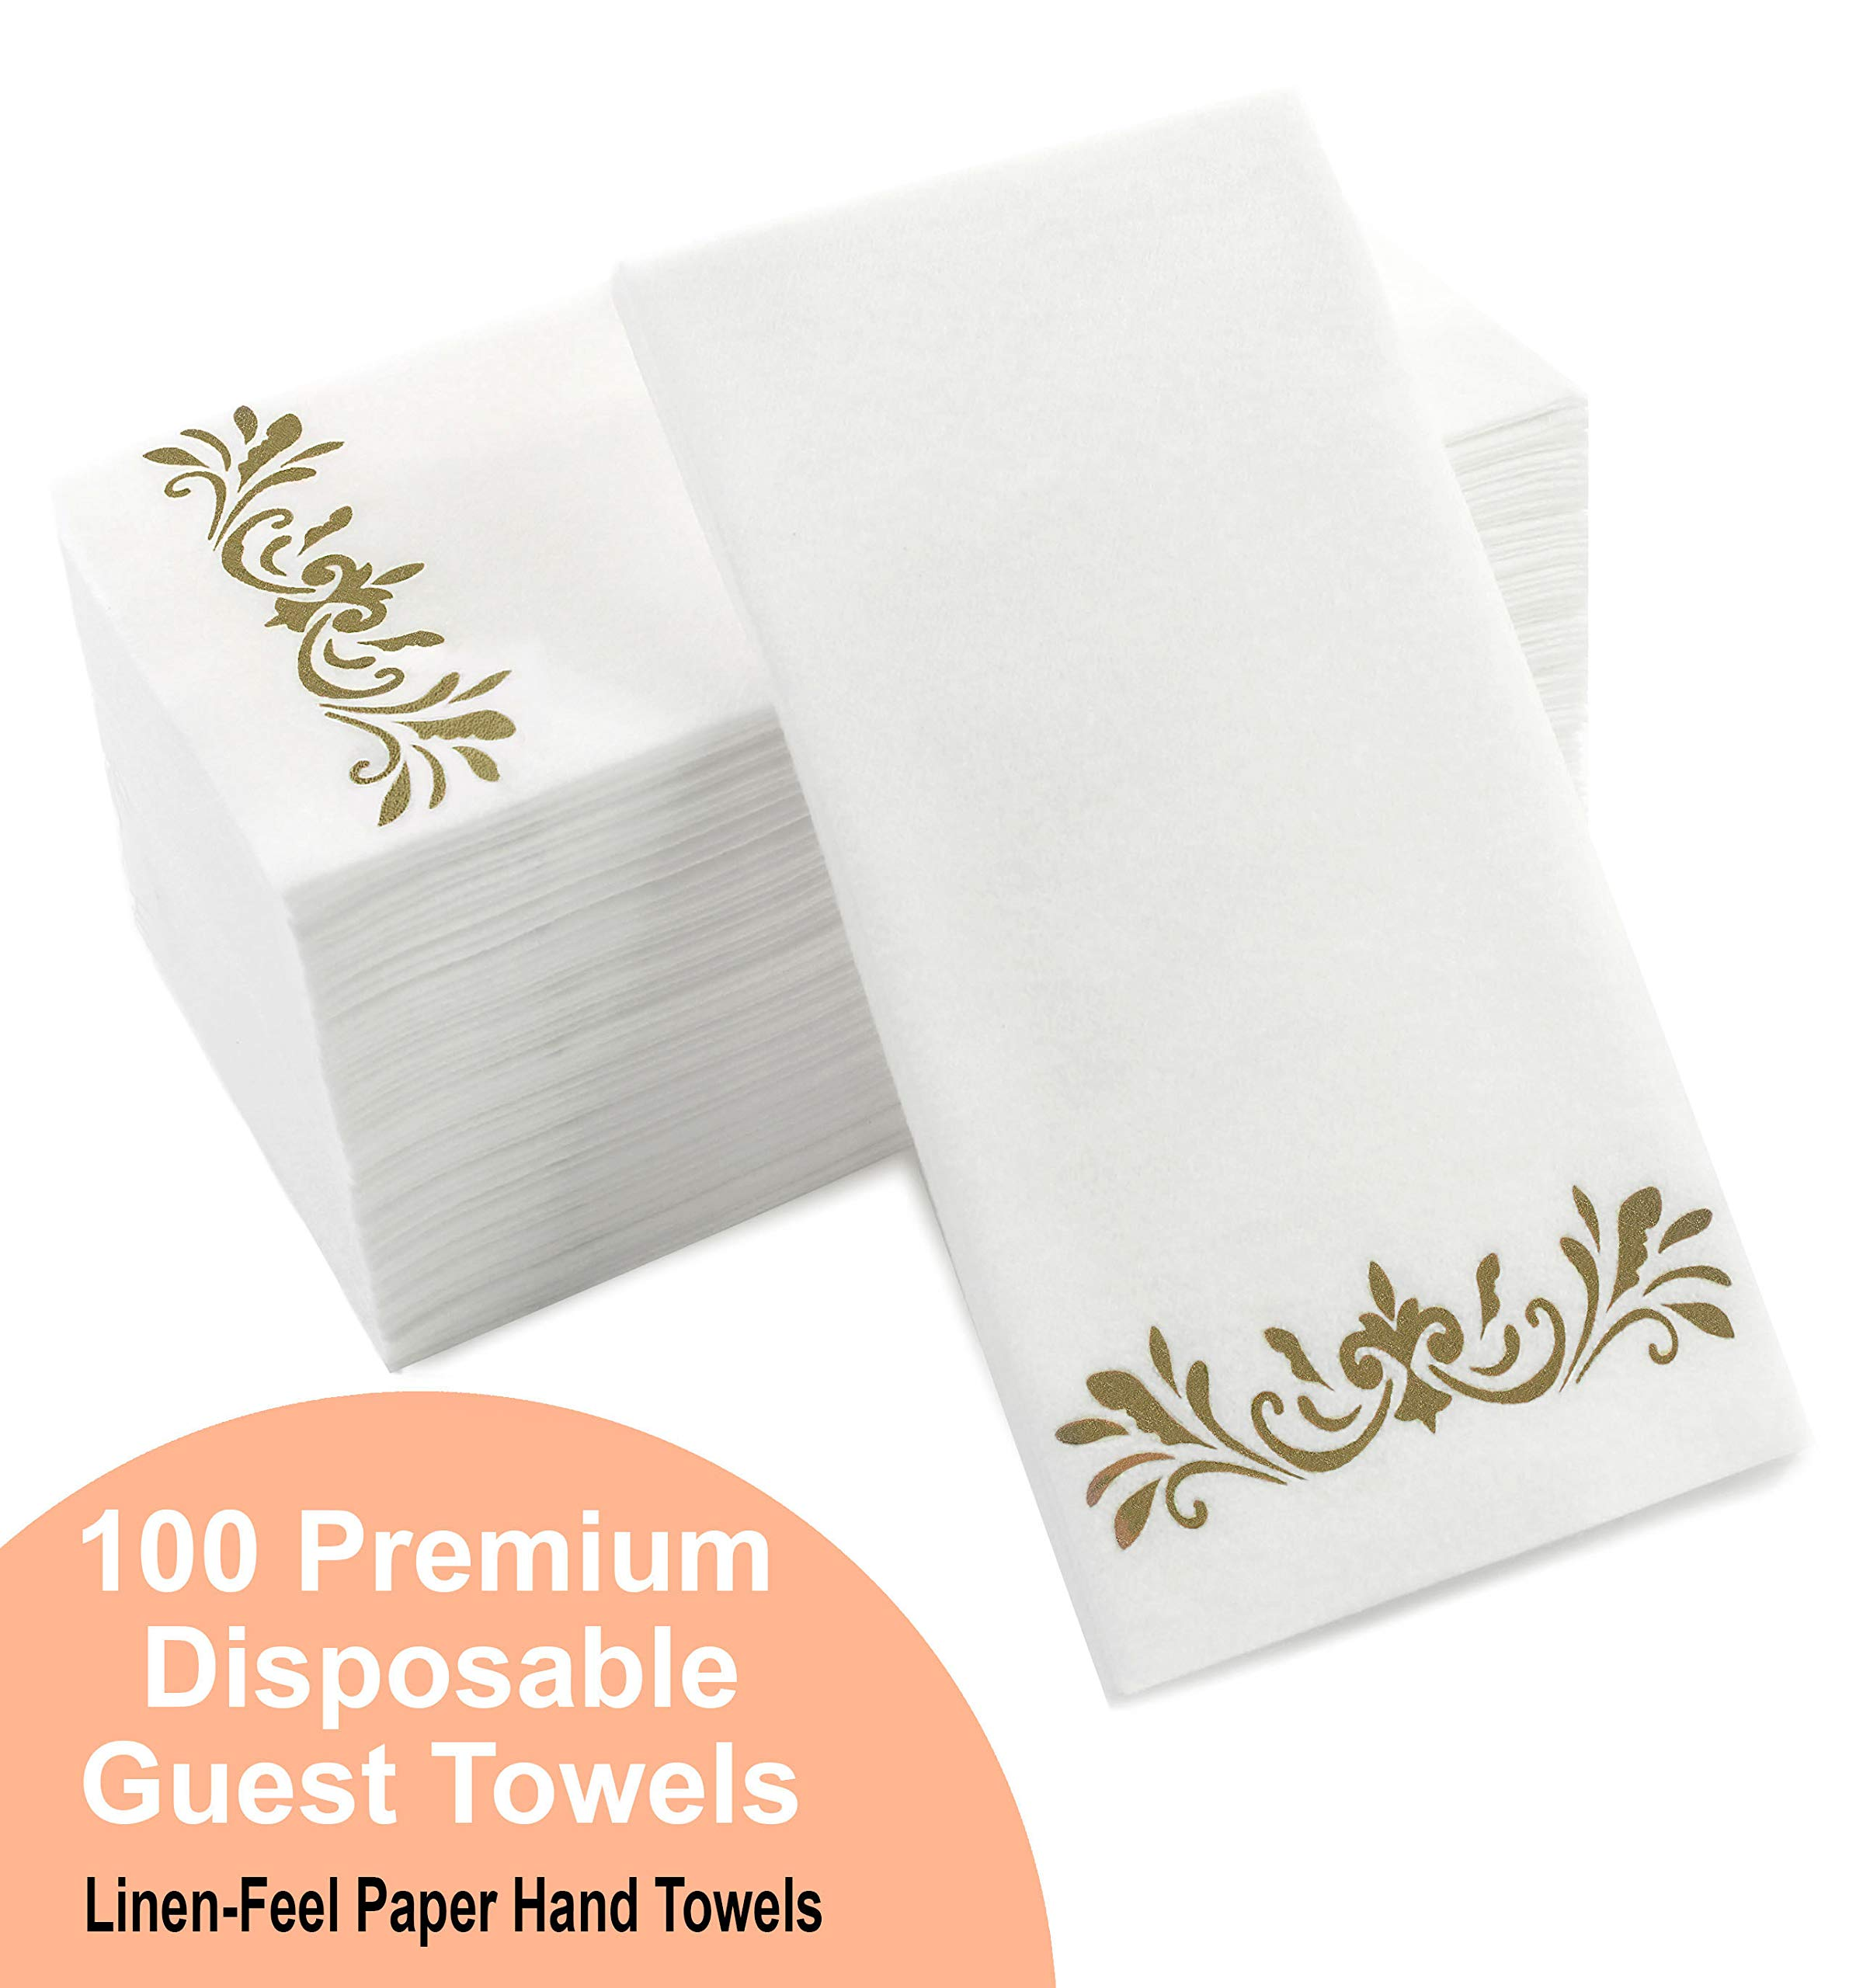 Rustic Gold Dinner Napkins, Disposable Party Napkins, Paper Napkins Decorative, Linen Feel Disposable Hand Towels for Wedding, Guest Bathroom & More - White with Rustic Gold, 100 Pack, 8.25 x 4 Inches